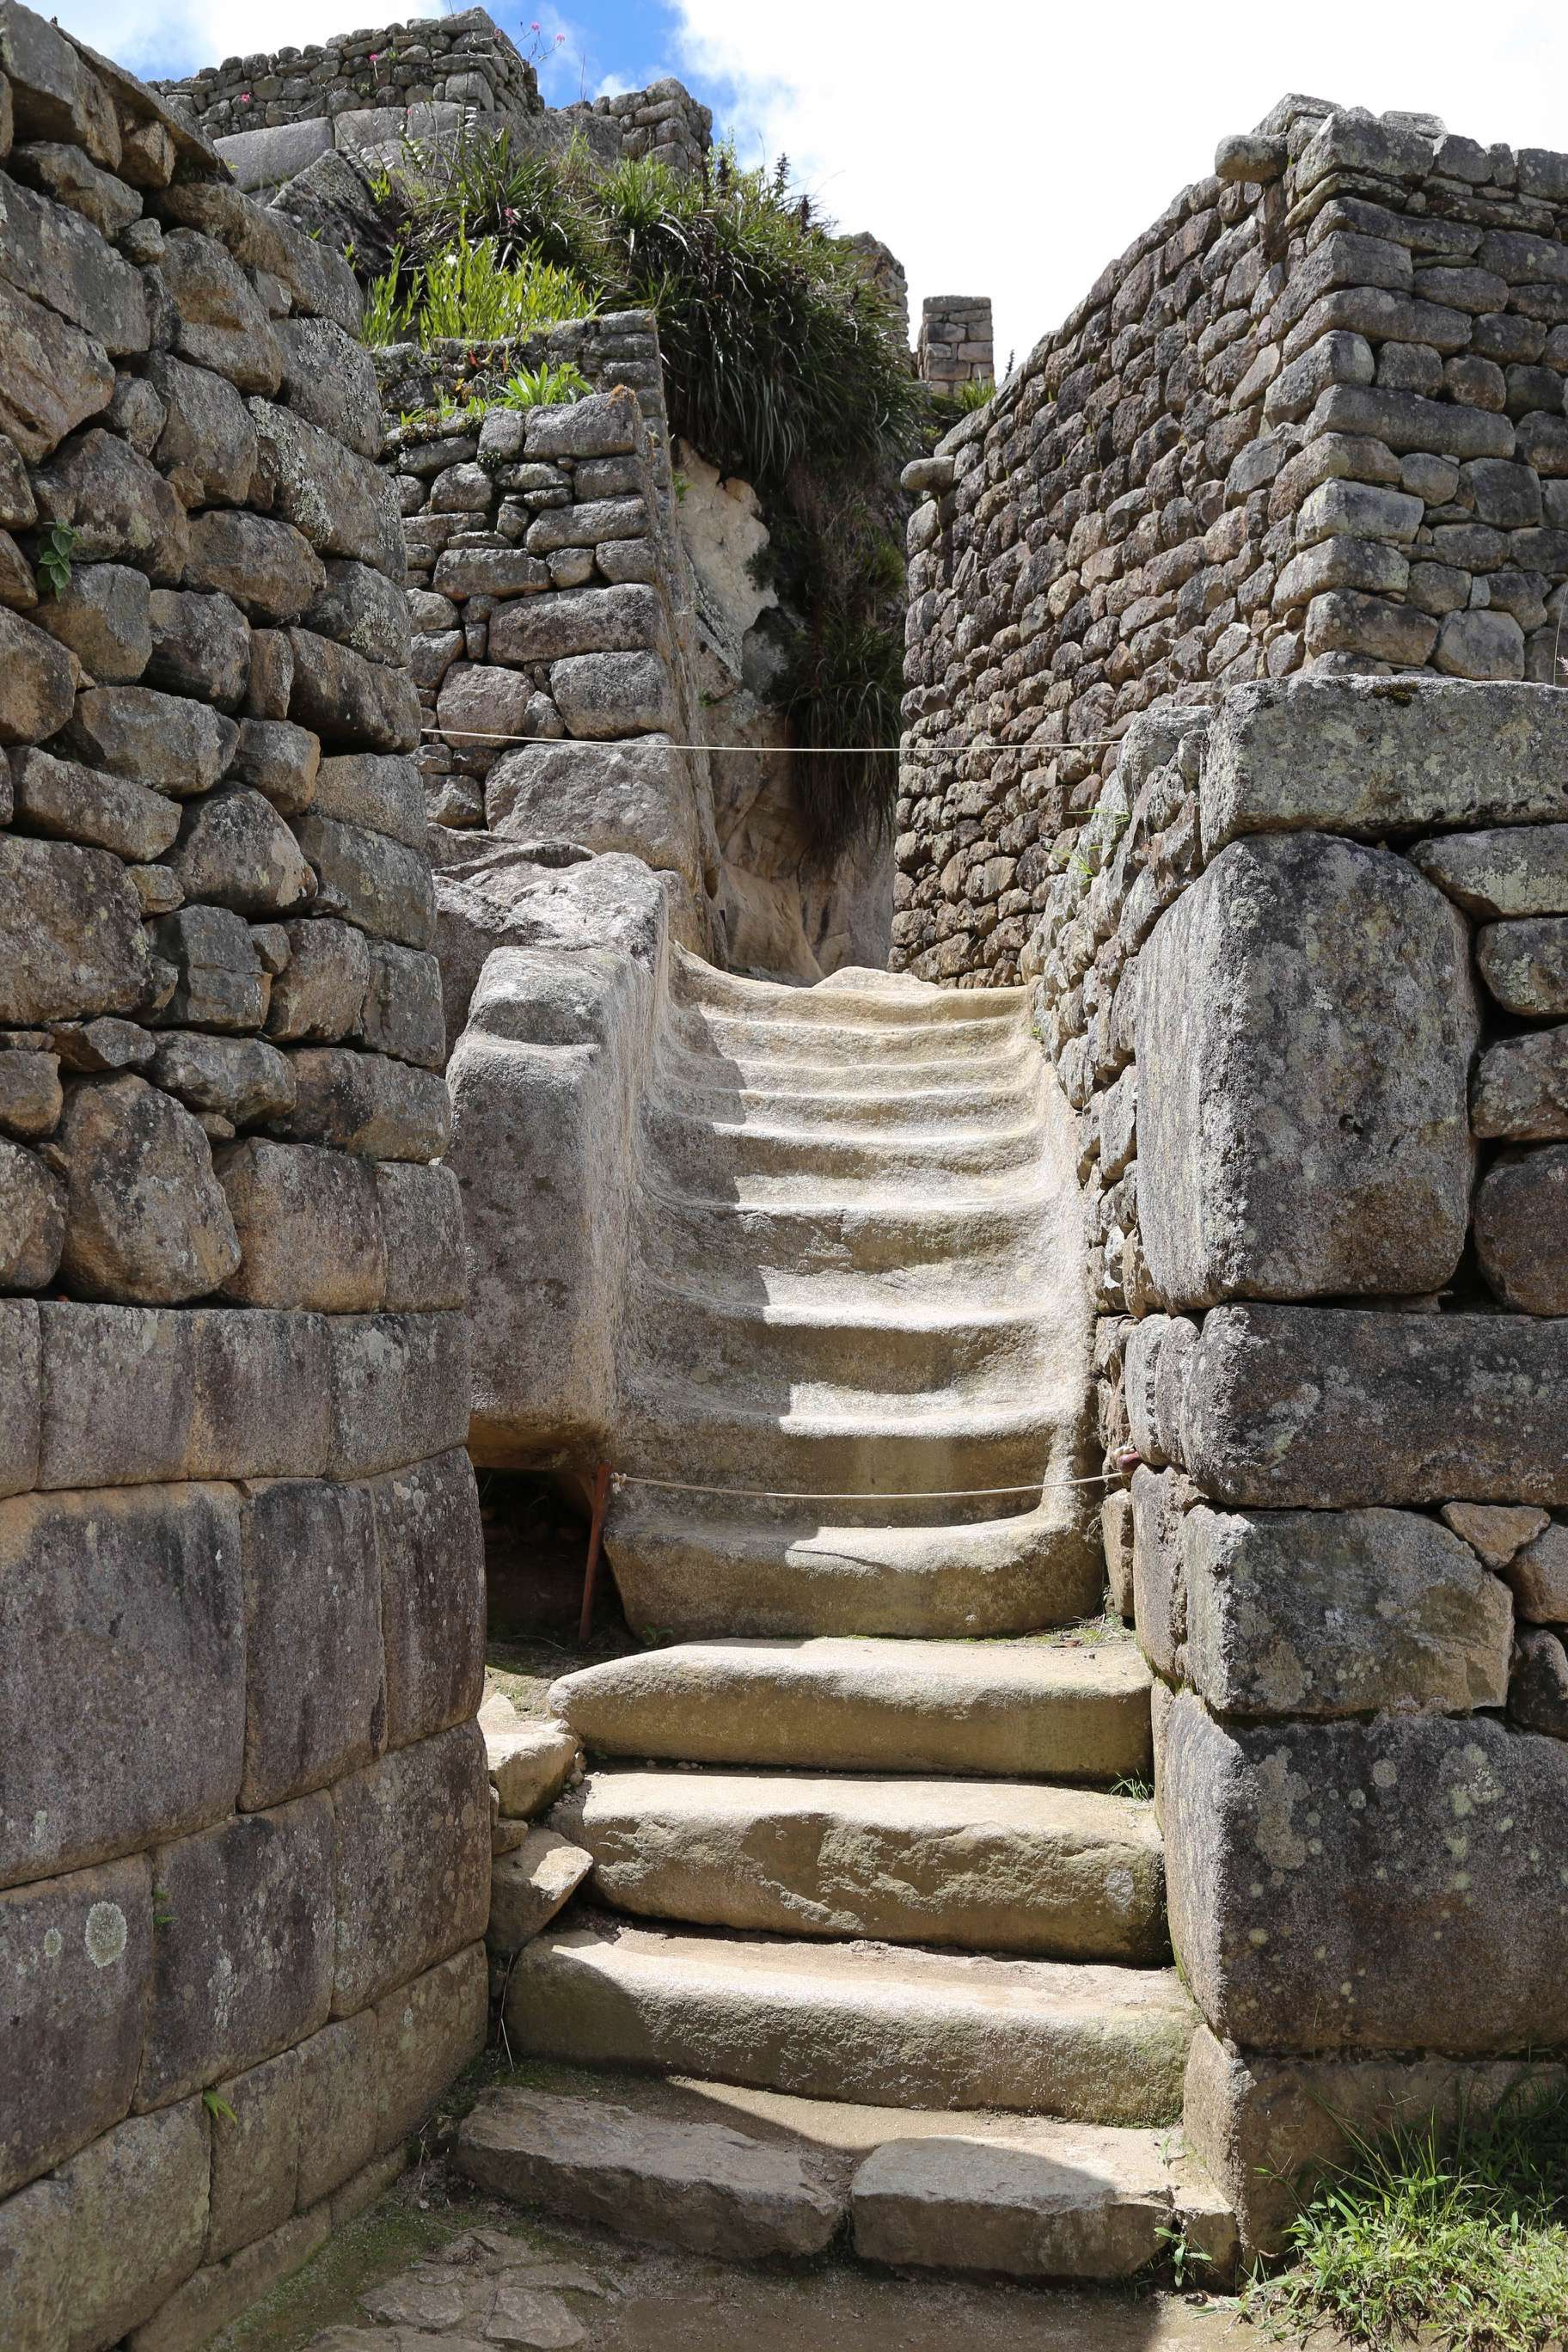 The builders of Machu Picchu used stones to carve stones and the stairs in the middle are a testament to the abilities.